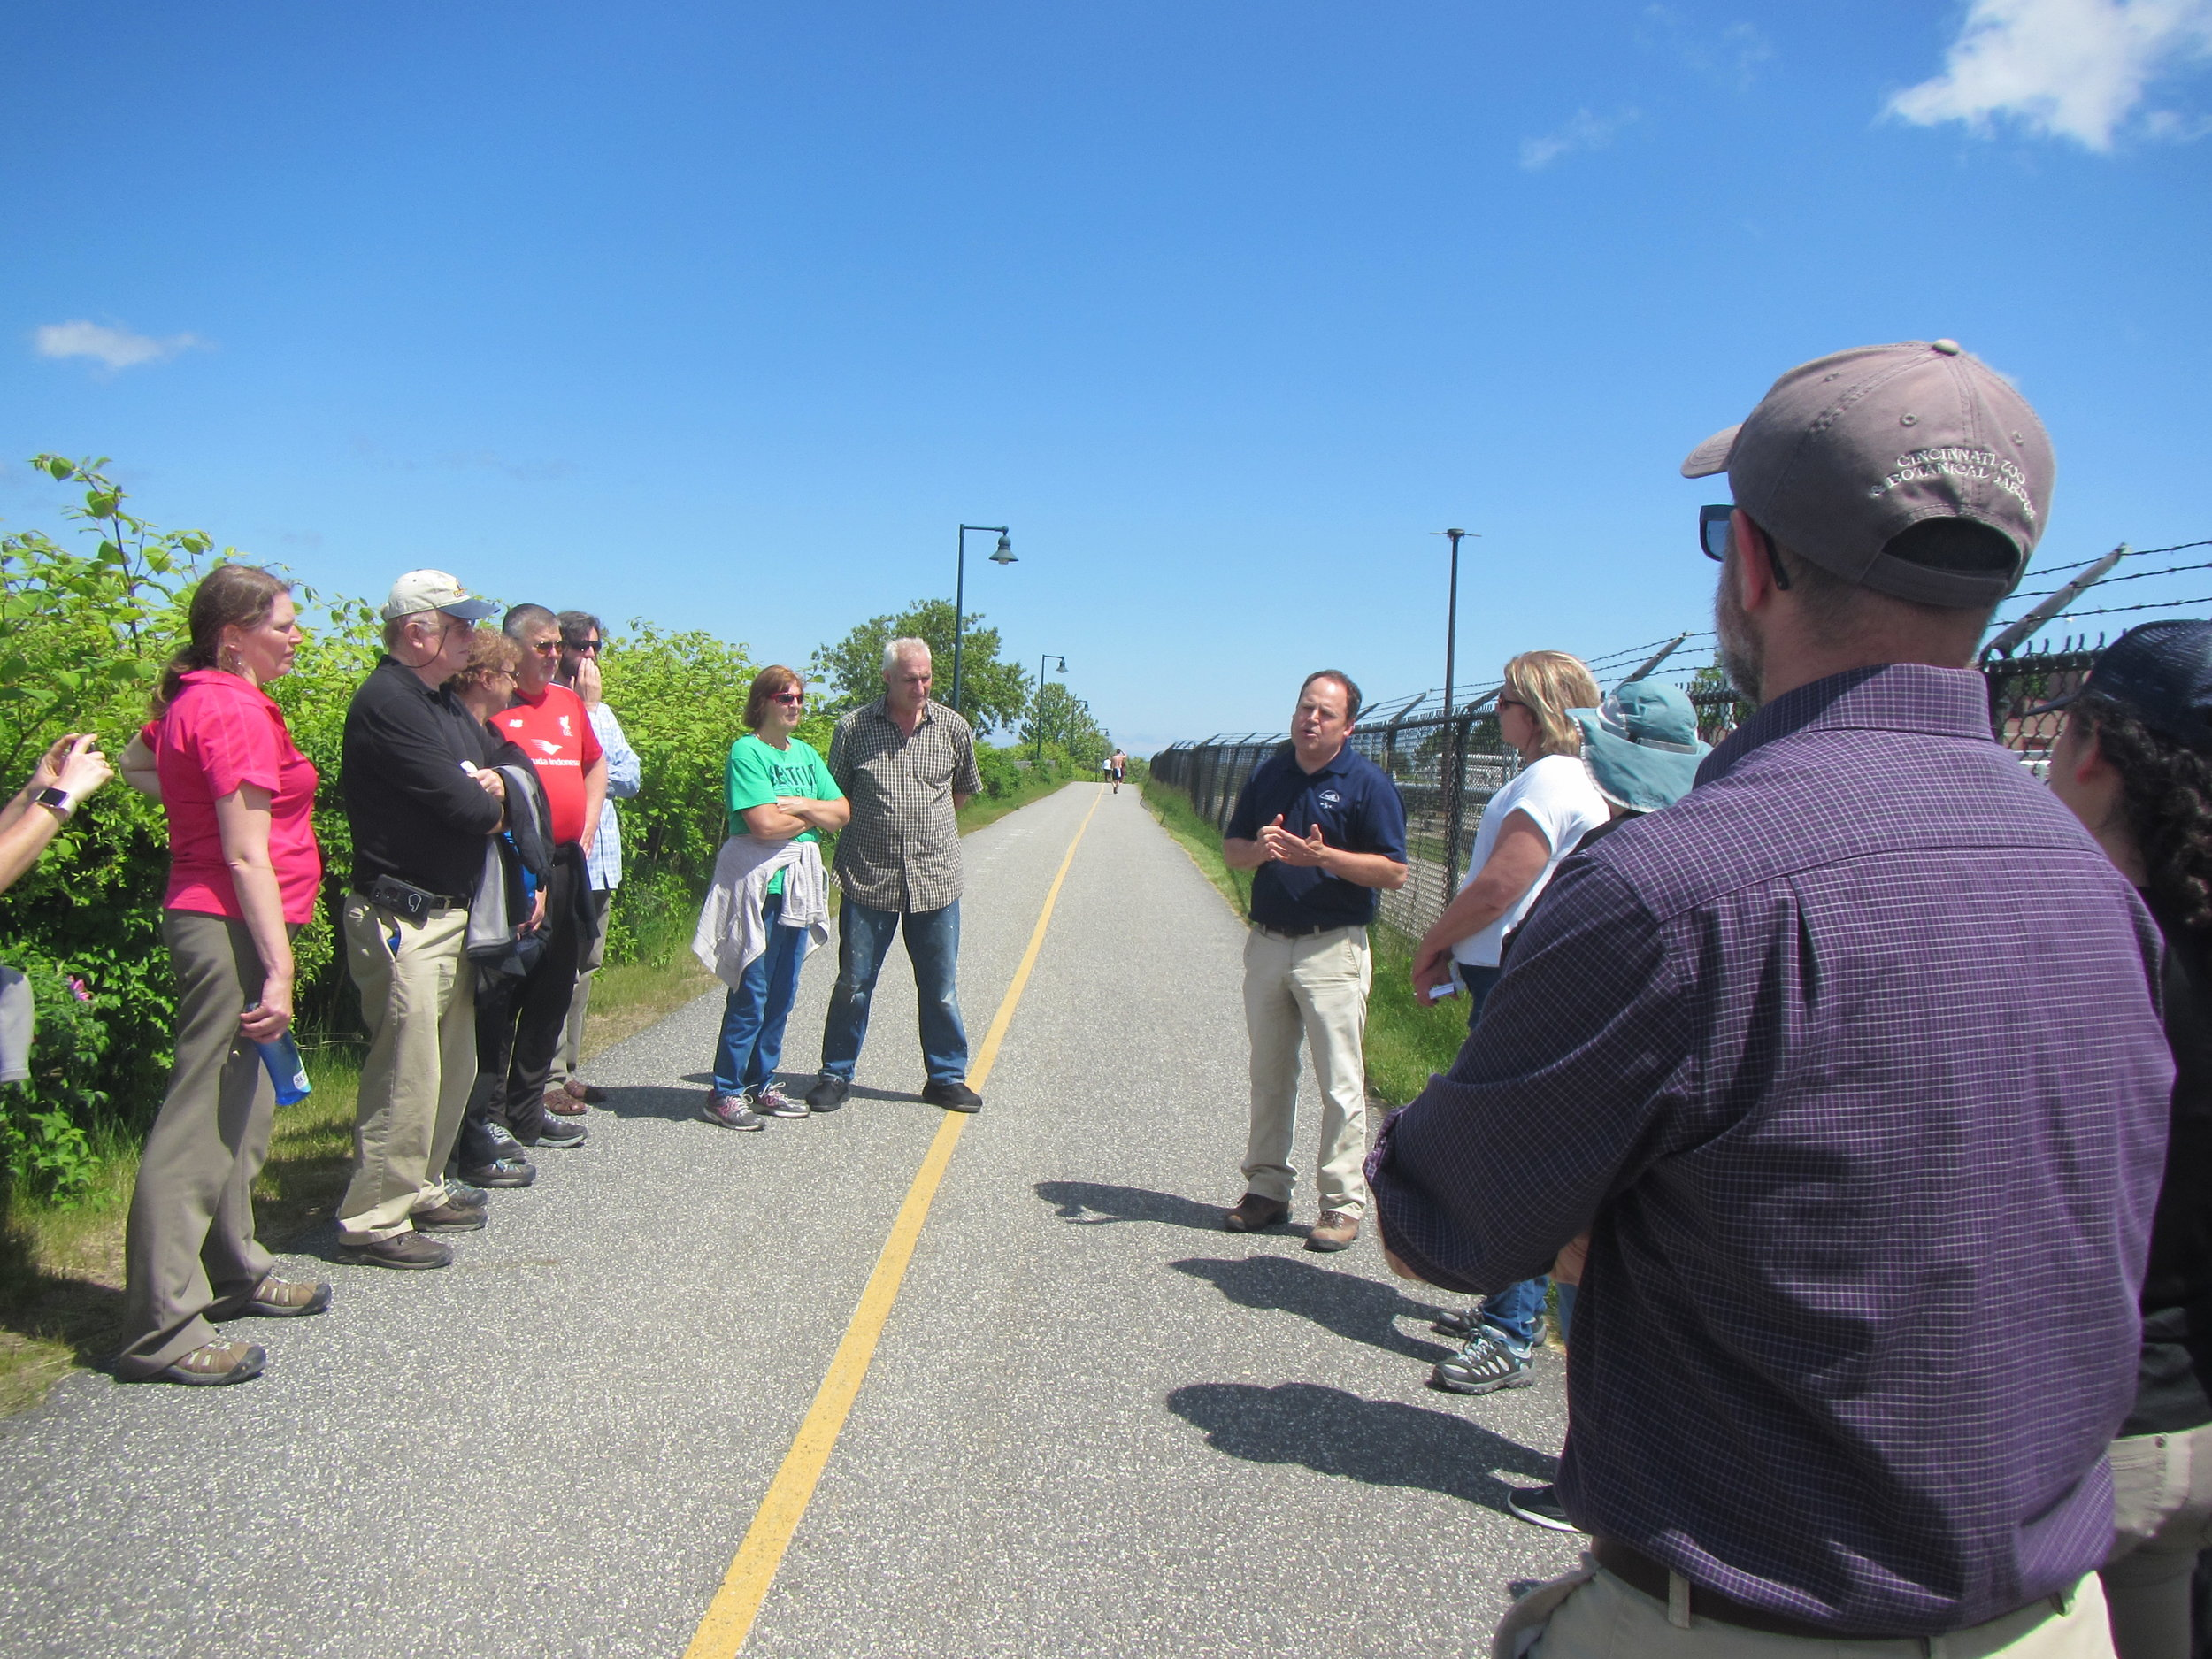 Water Resources Infrastructure Tour of Back Cove - June 6, 2019